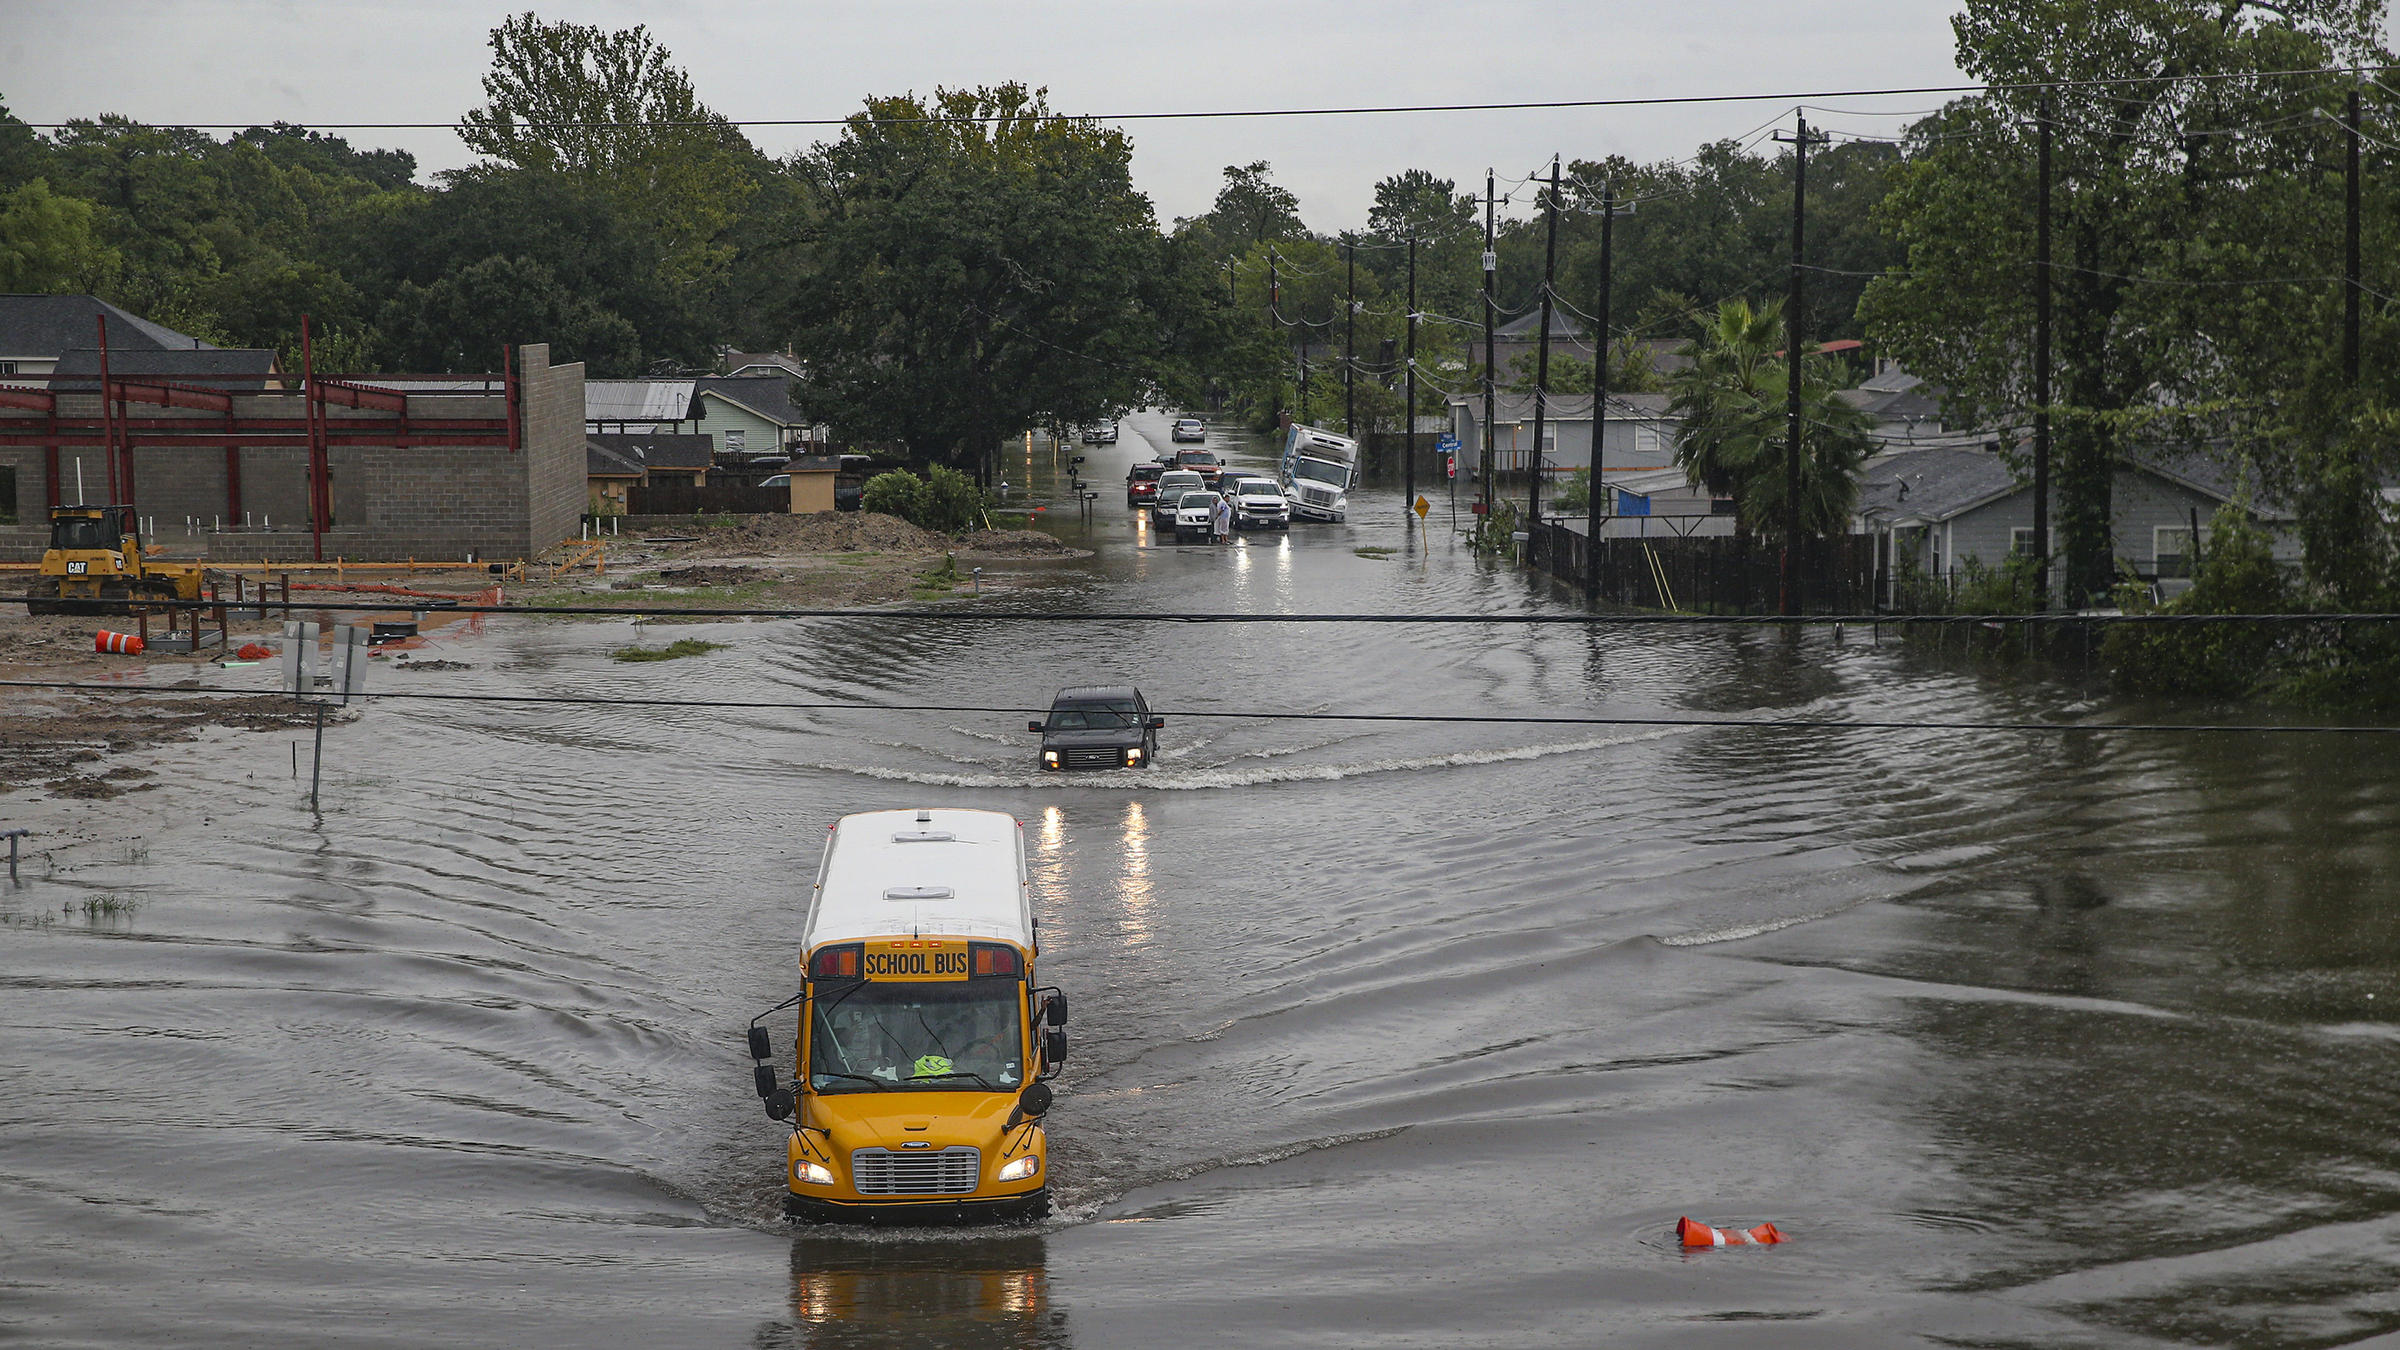 A school bus makes its way through a flooded road in Houston